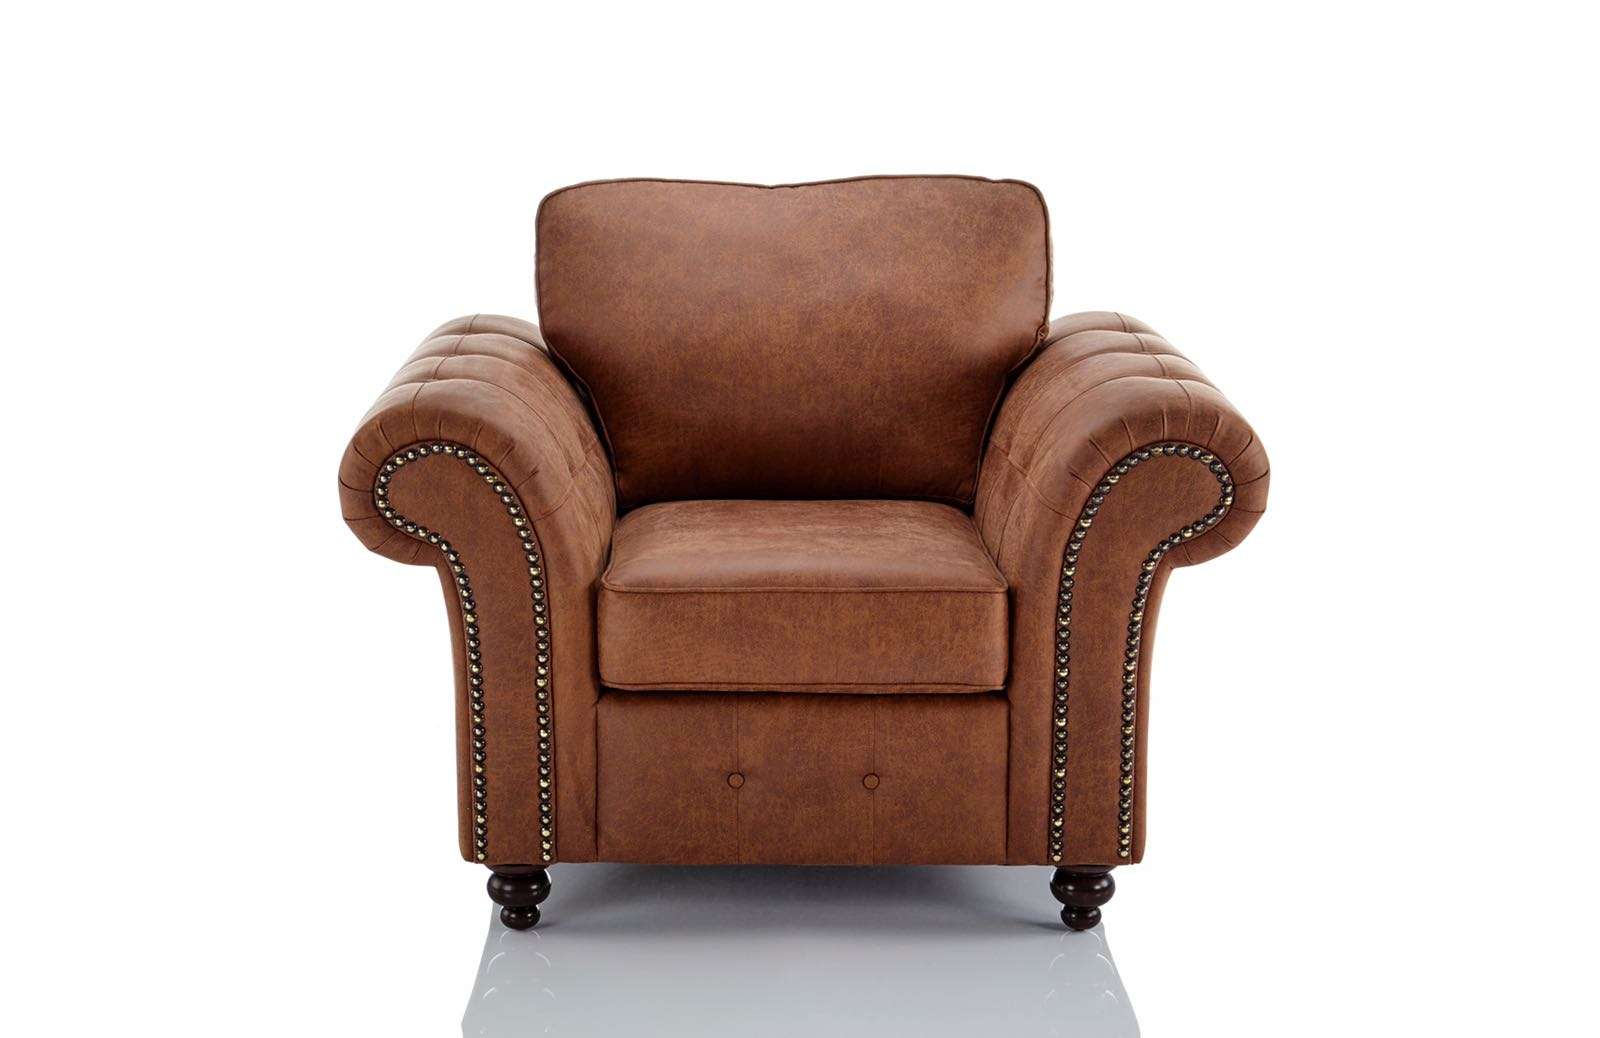 Chesterfield Sofas Lincoln Oakland Faux Leather Armchair In Brown | Just Sit On It